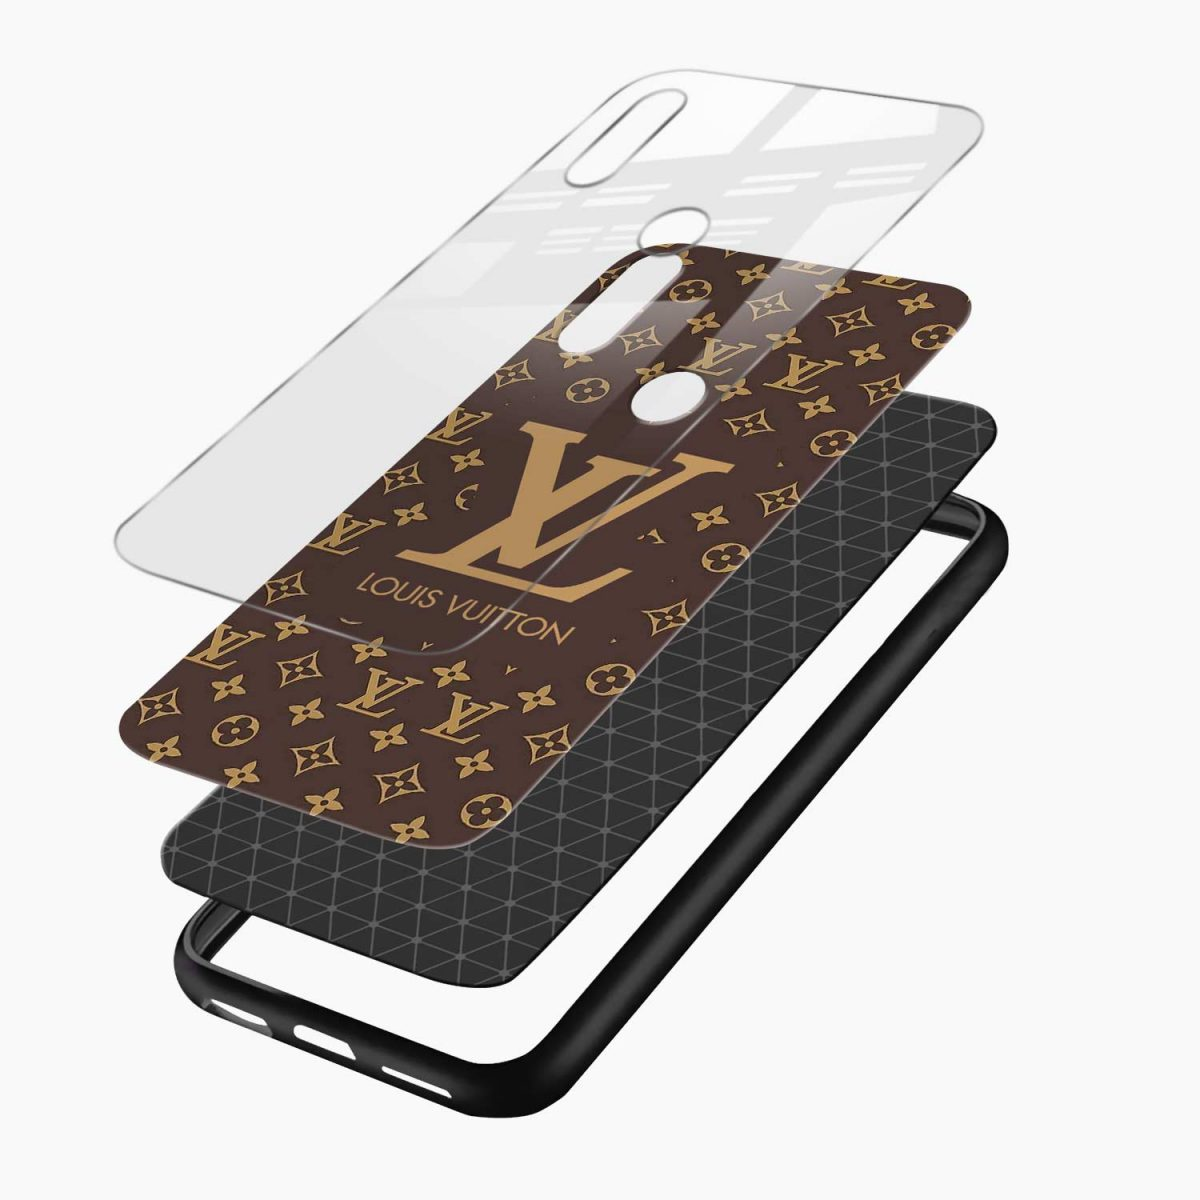 louis vuitton redmi note 5 pro back cover layers view 1